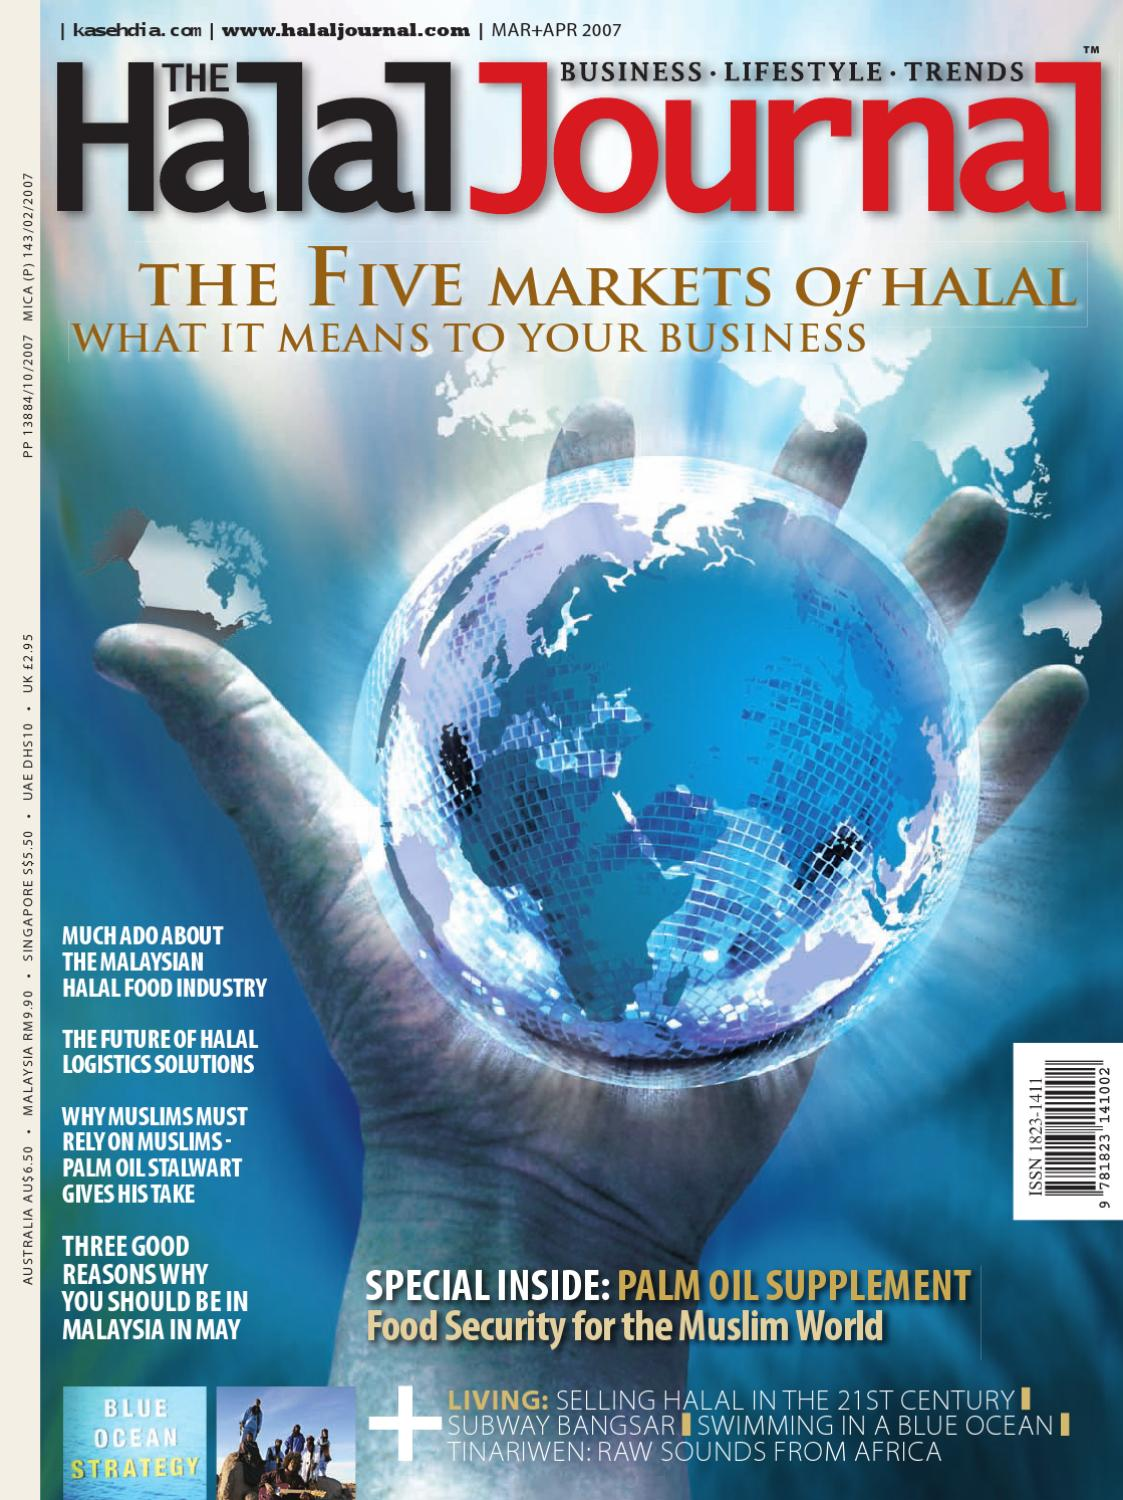 The Halal Journal - March April 2007 by The Halal Journal - issuu be6c63fcd